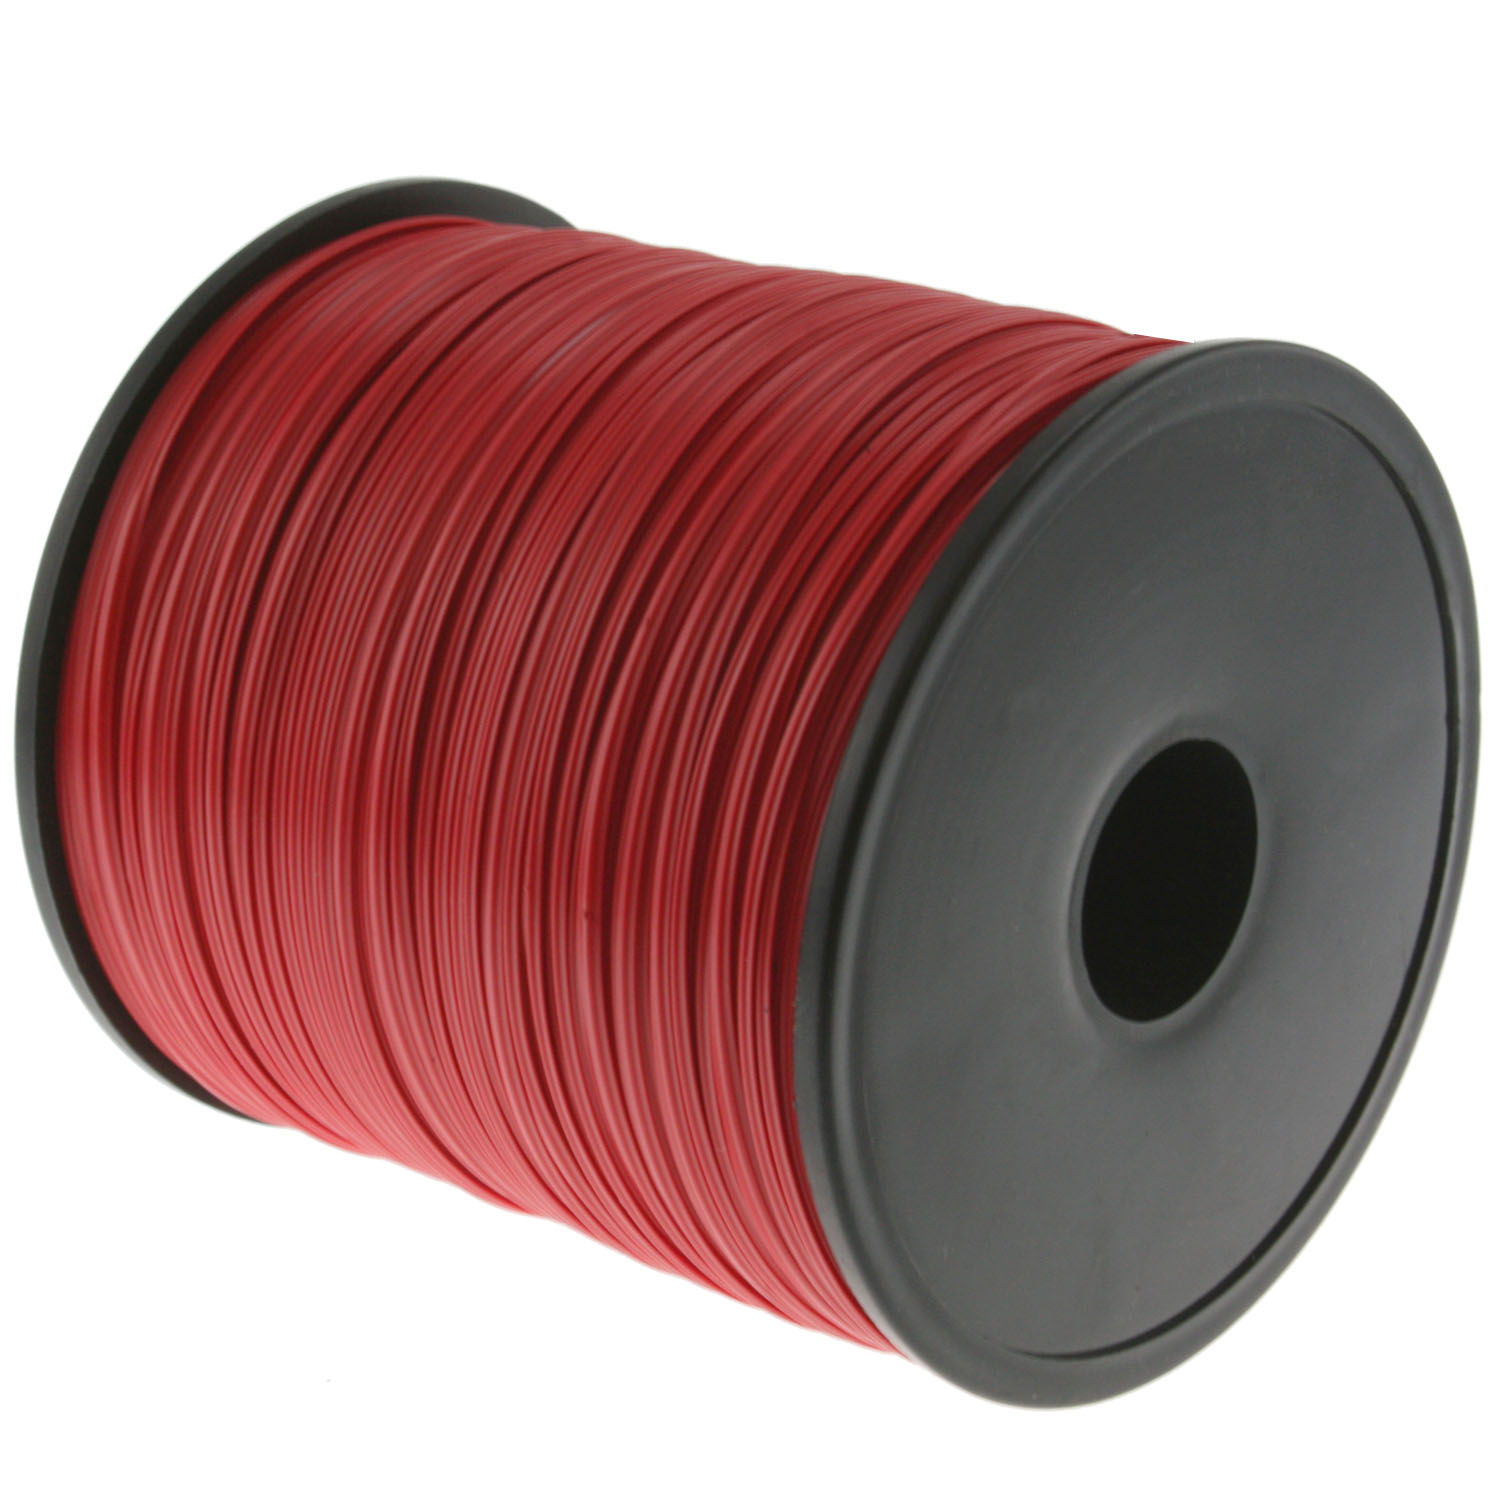 Cable Tie Roll, 886 Feet Long - Red